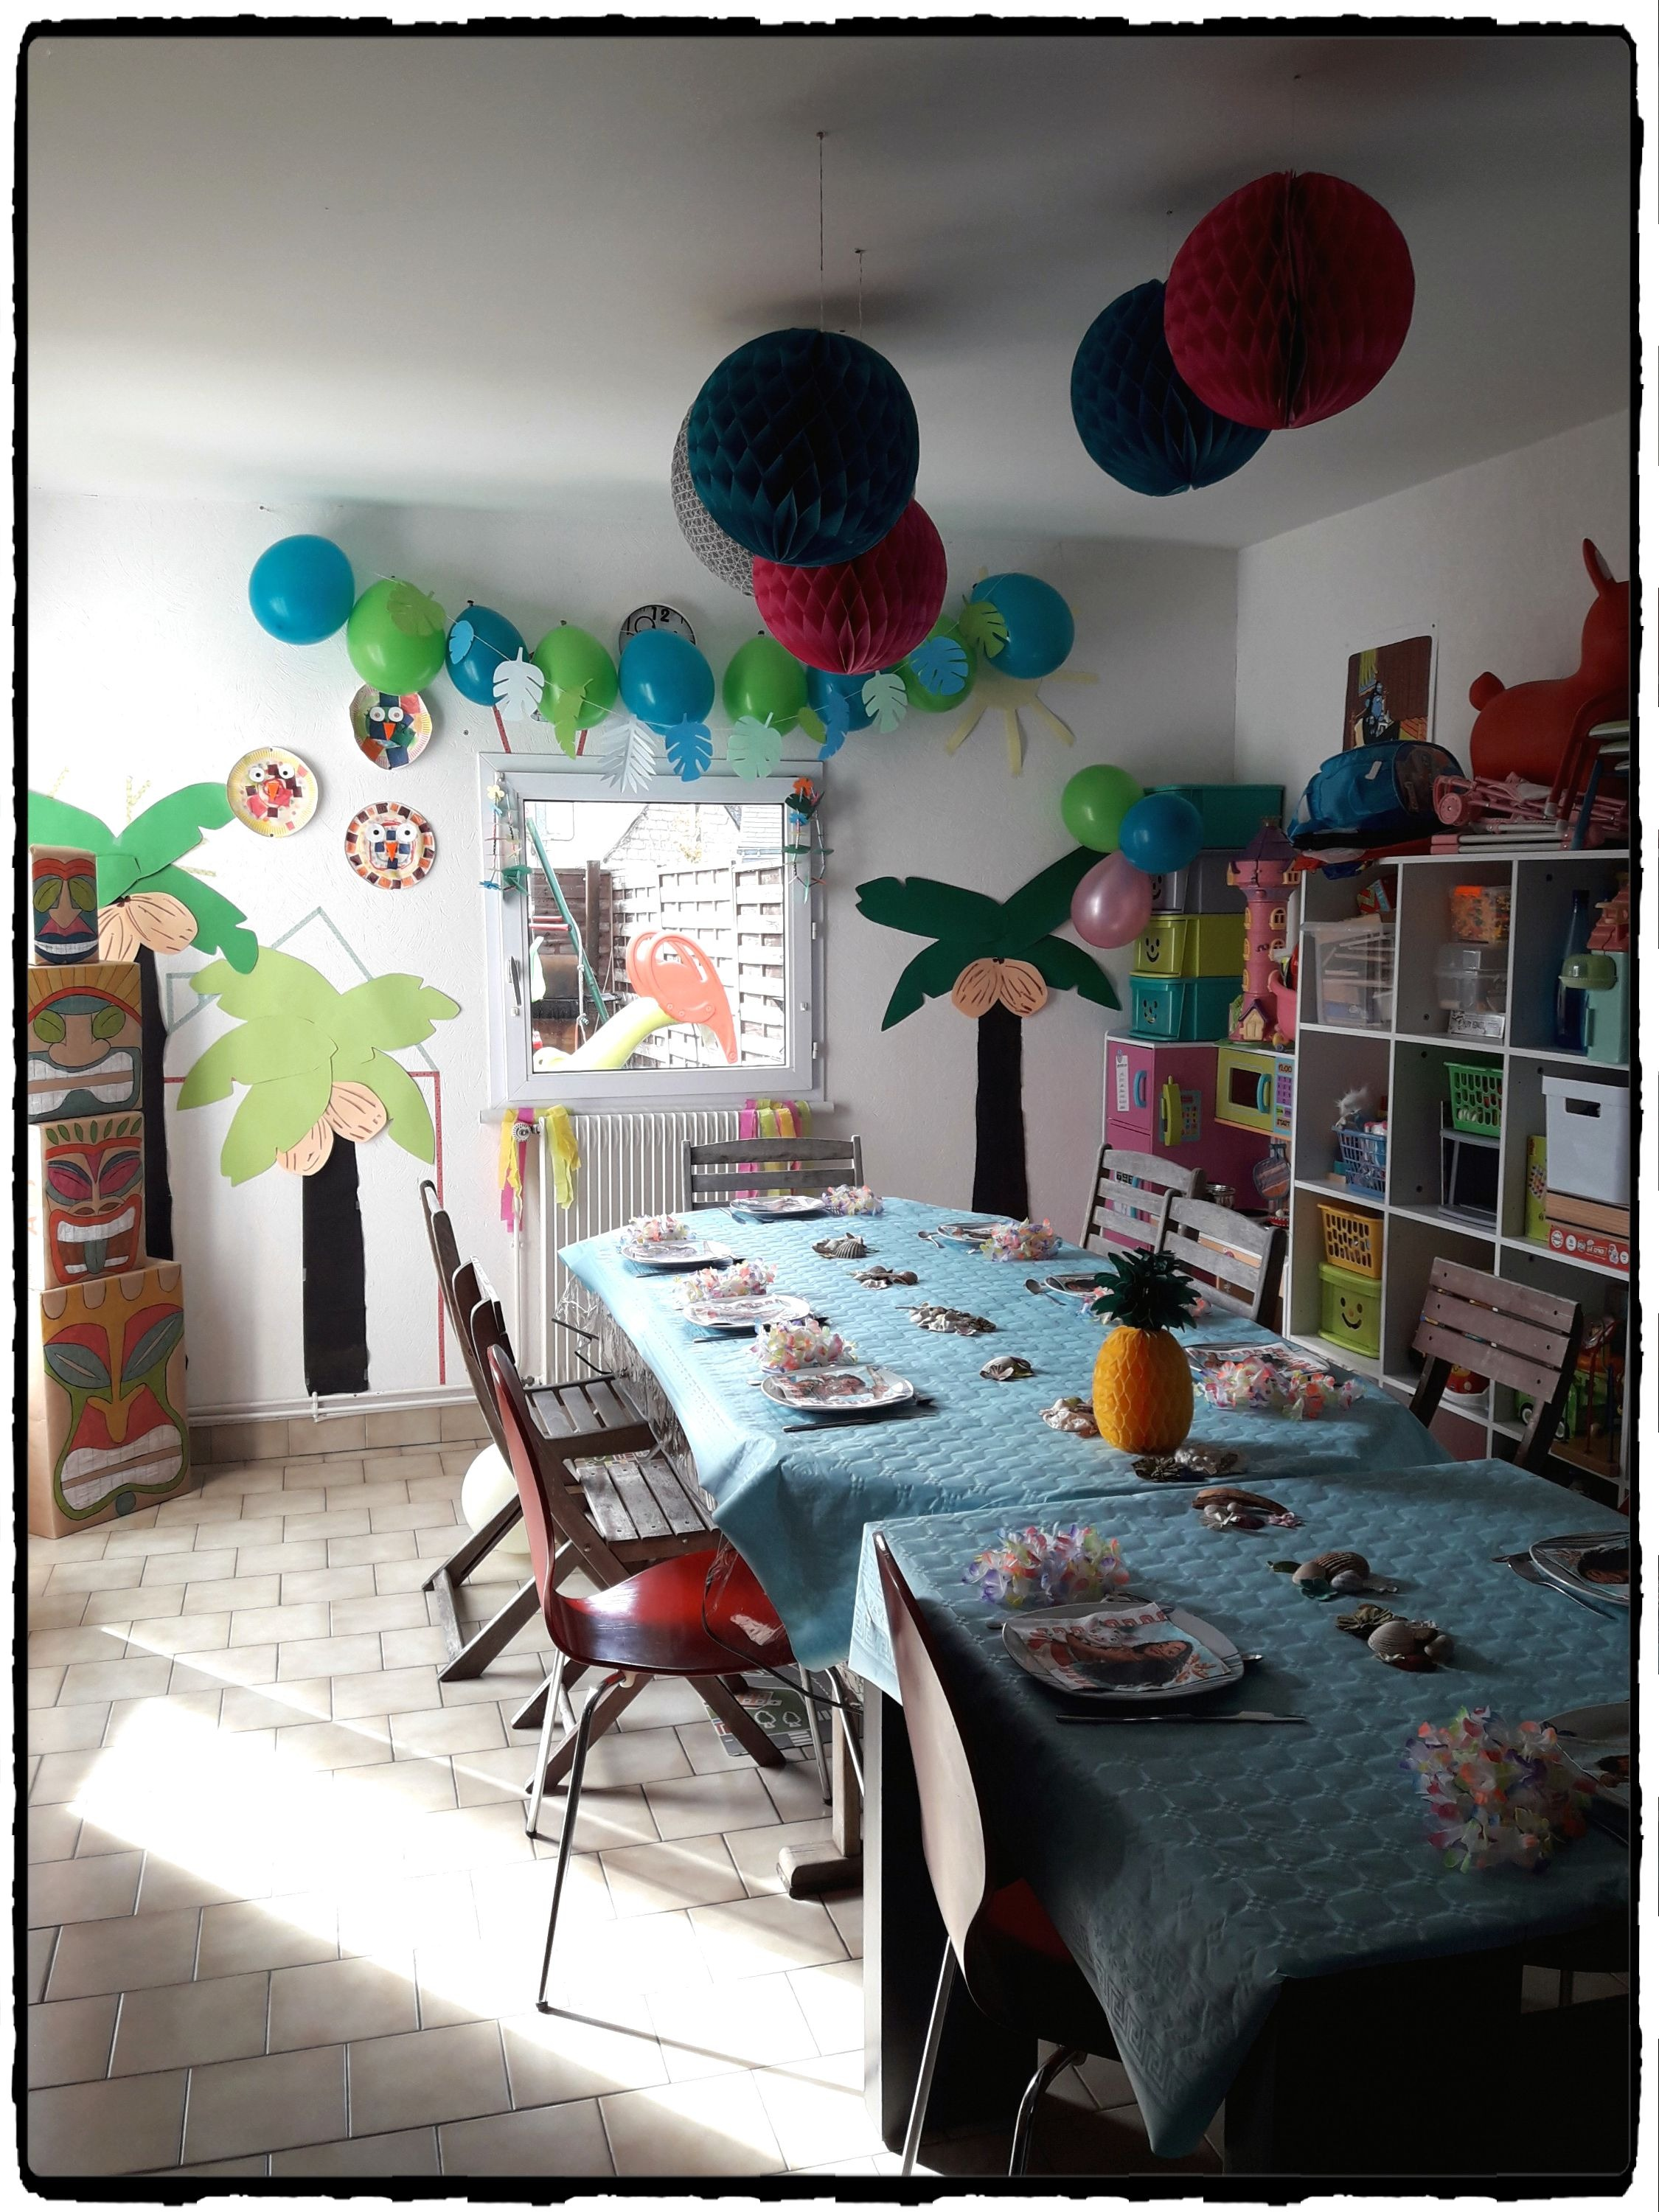 anniversaire vaiana th me tropical 7 ans ashley mes humeurs cr atives. Black Bedroom Furniture Sets. Home Design Ideas